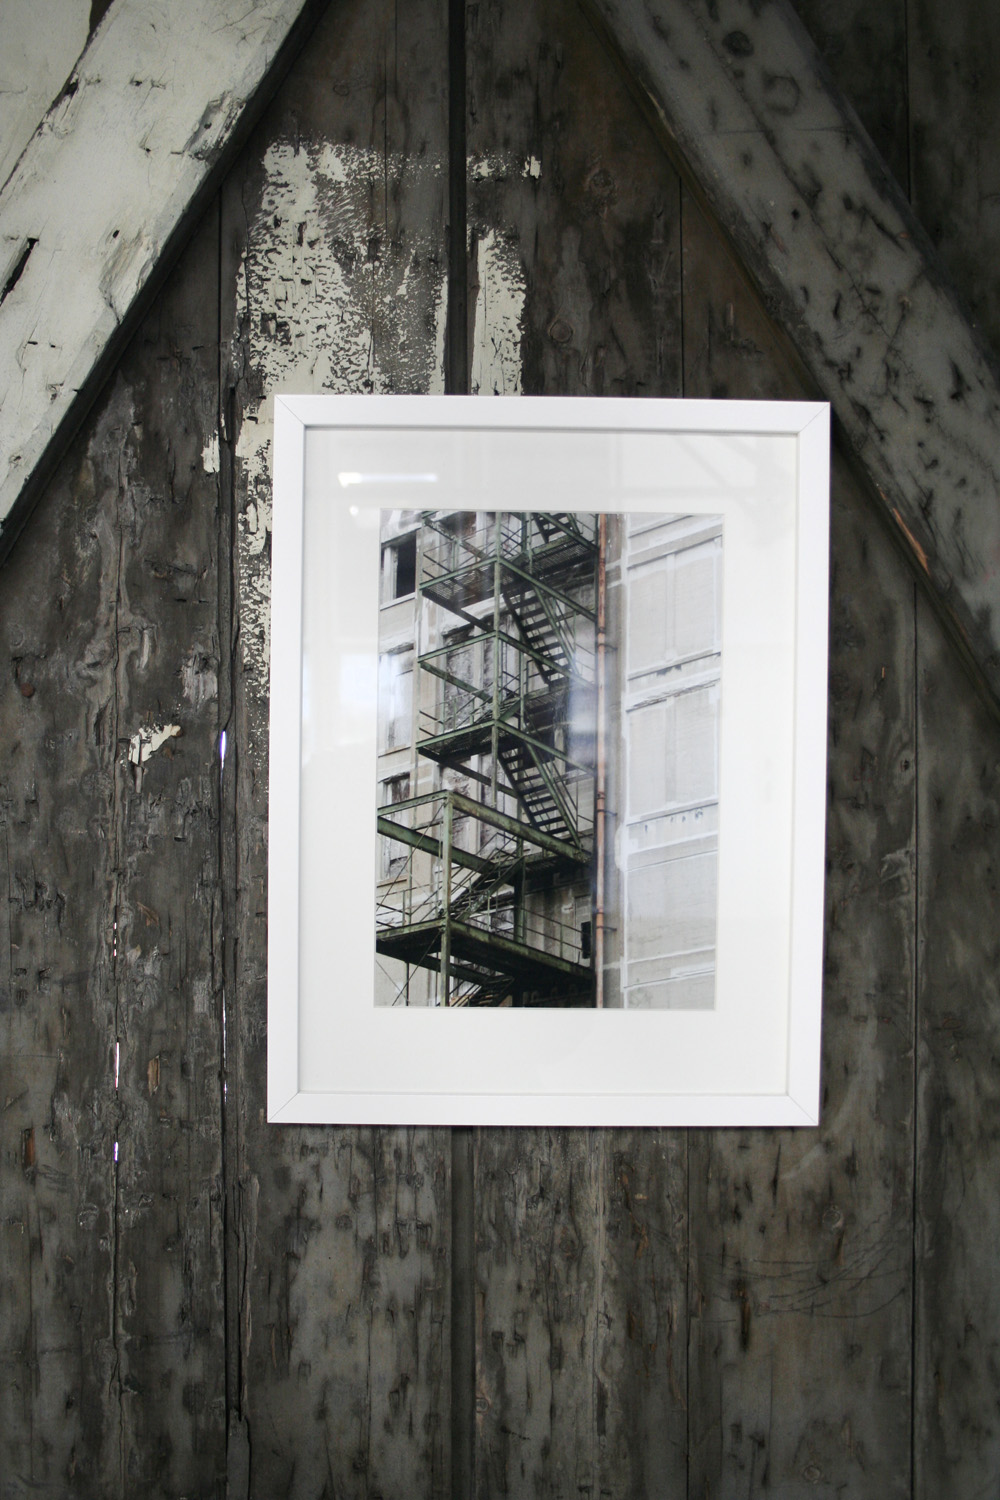 art-prints, photographs, geometric, architecture, beige, green, white, photographs, architectural, buildings, design, interior, interior-design, Buy original high quality art. Paintings, drawings, limited edition prints & posters by talented artists.